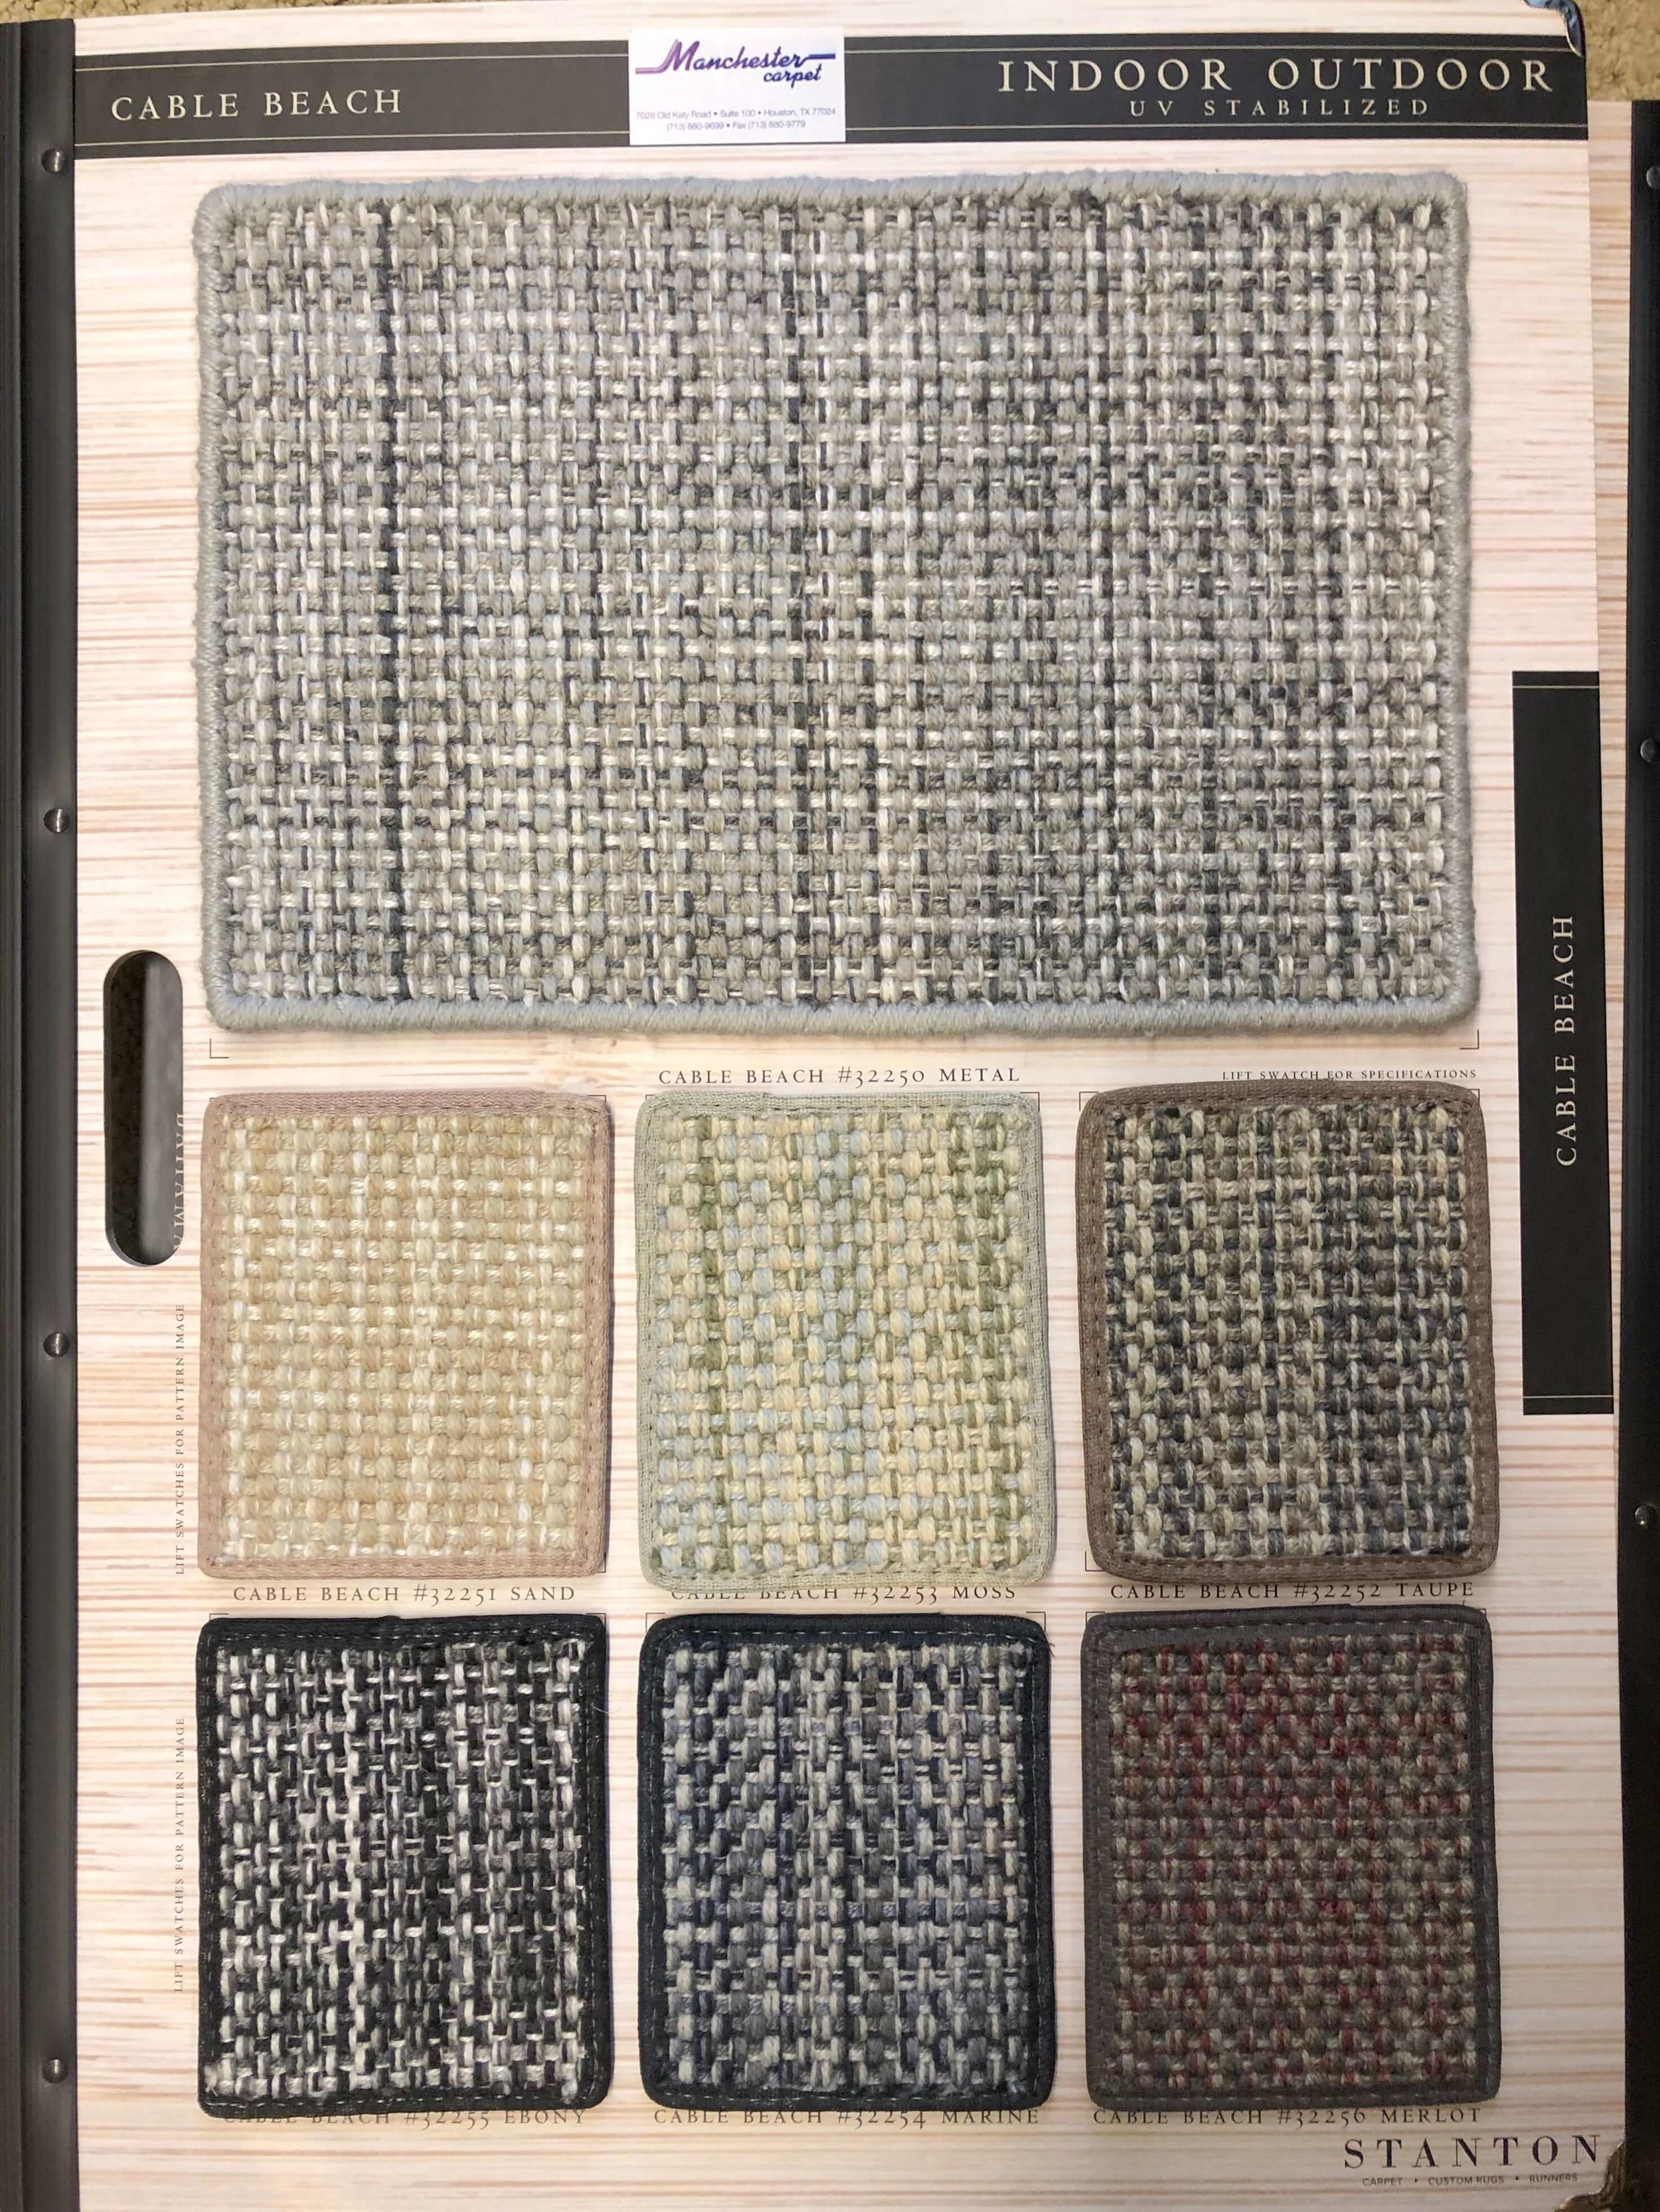 Nice colorways available in this carpet that looks like a flatweave type, natural fiber rug. It's made of polypropylene and has none of the problems of natural fibers.